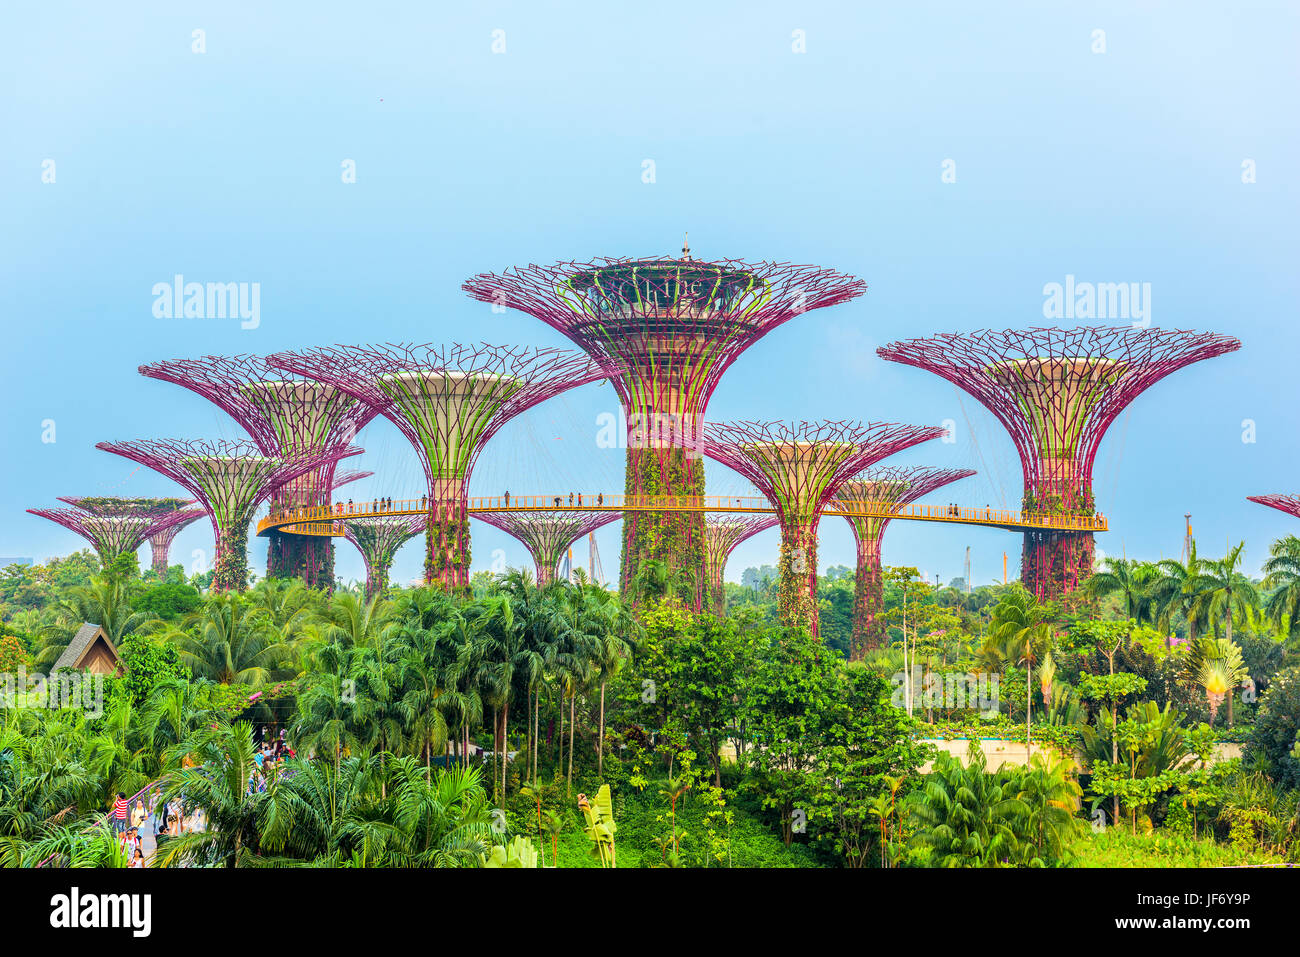 Singapur - September 5, 2015: supertrees an Gärten an der Bucht. Stockbild